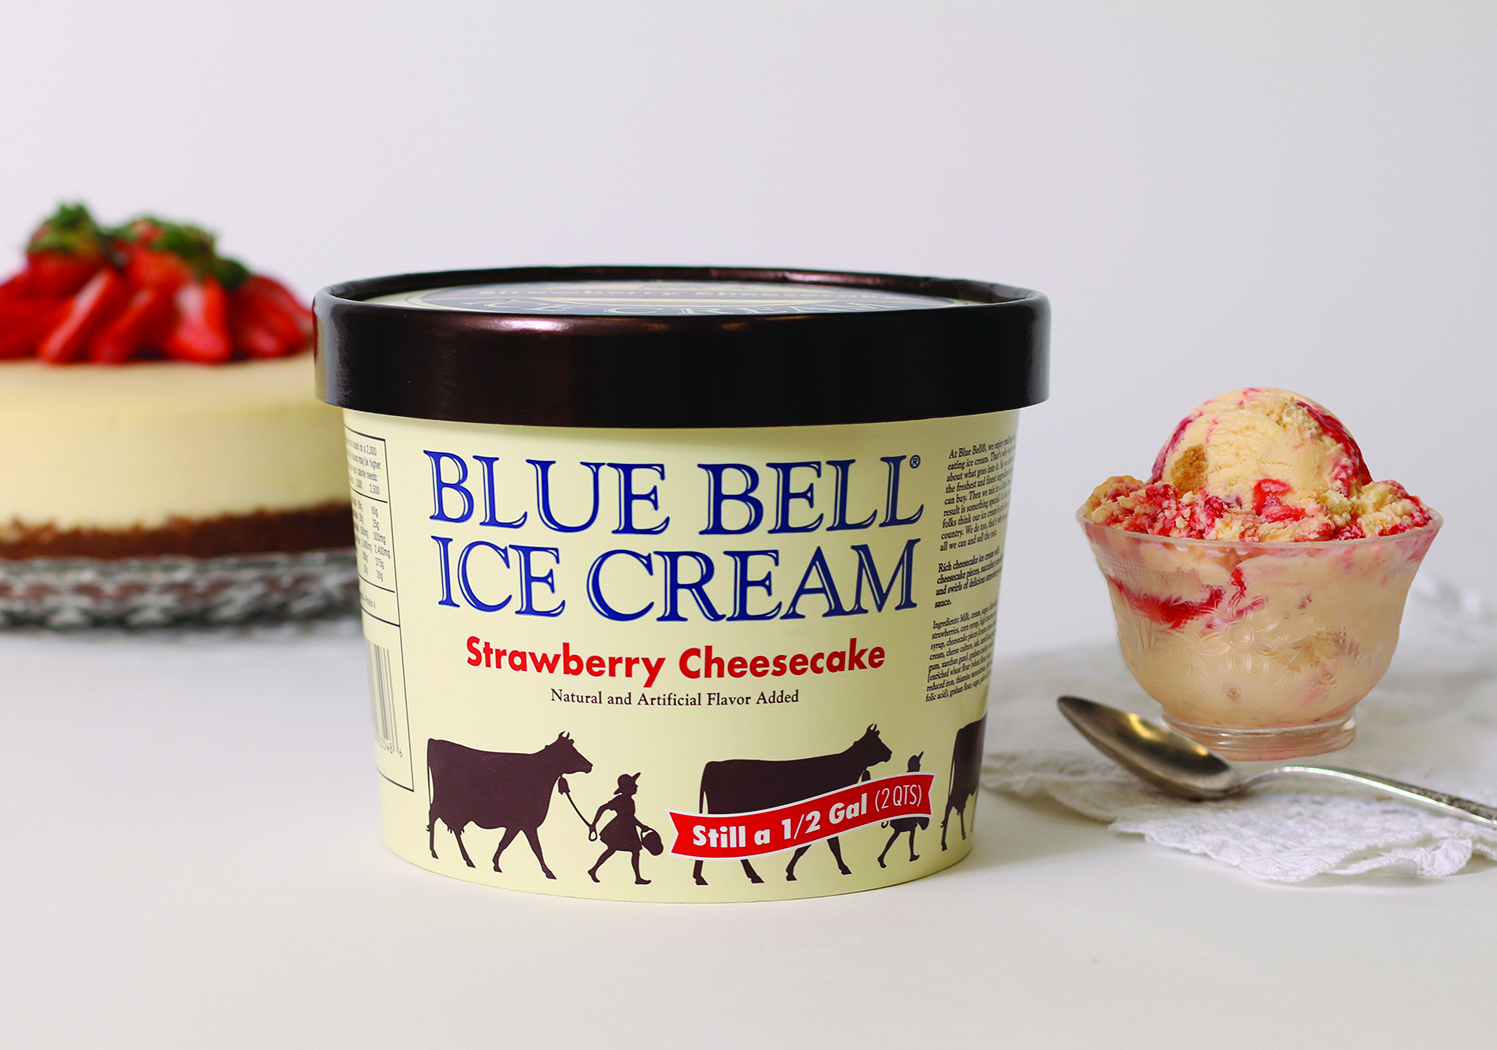 Blue Bell Strawberry Cheesecake Ice Cream